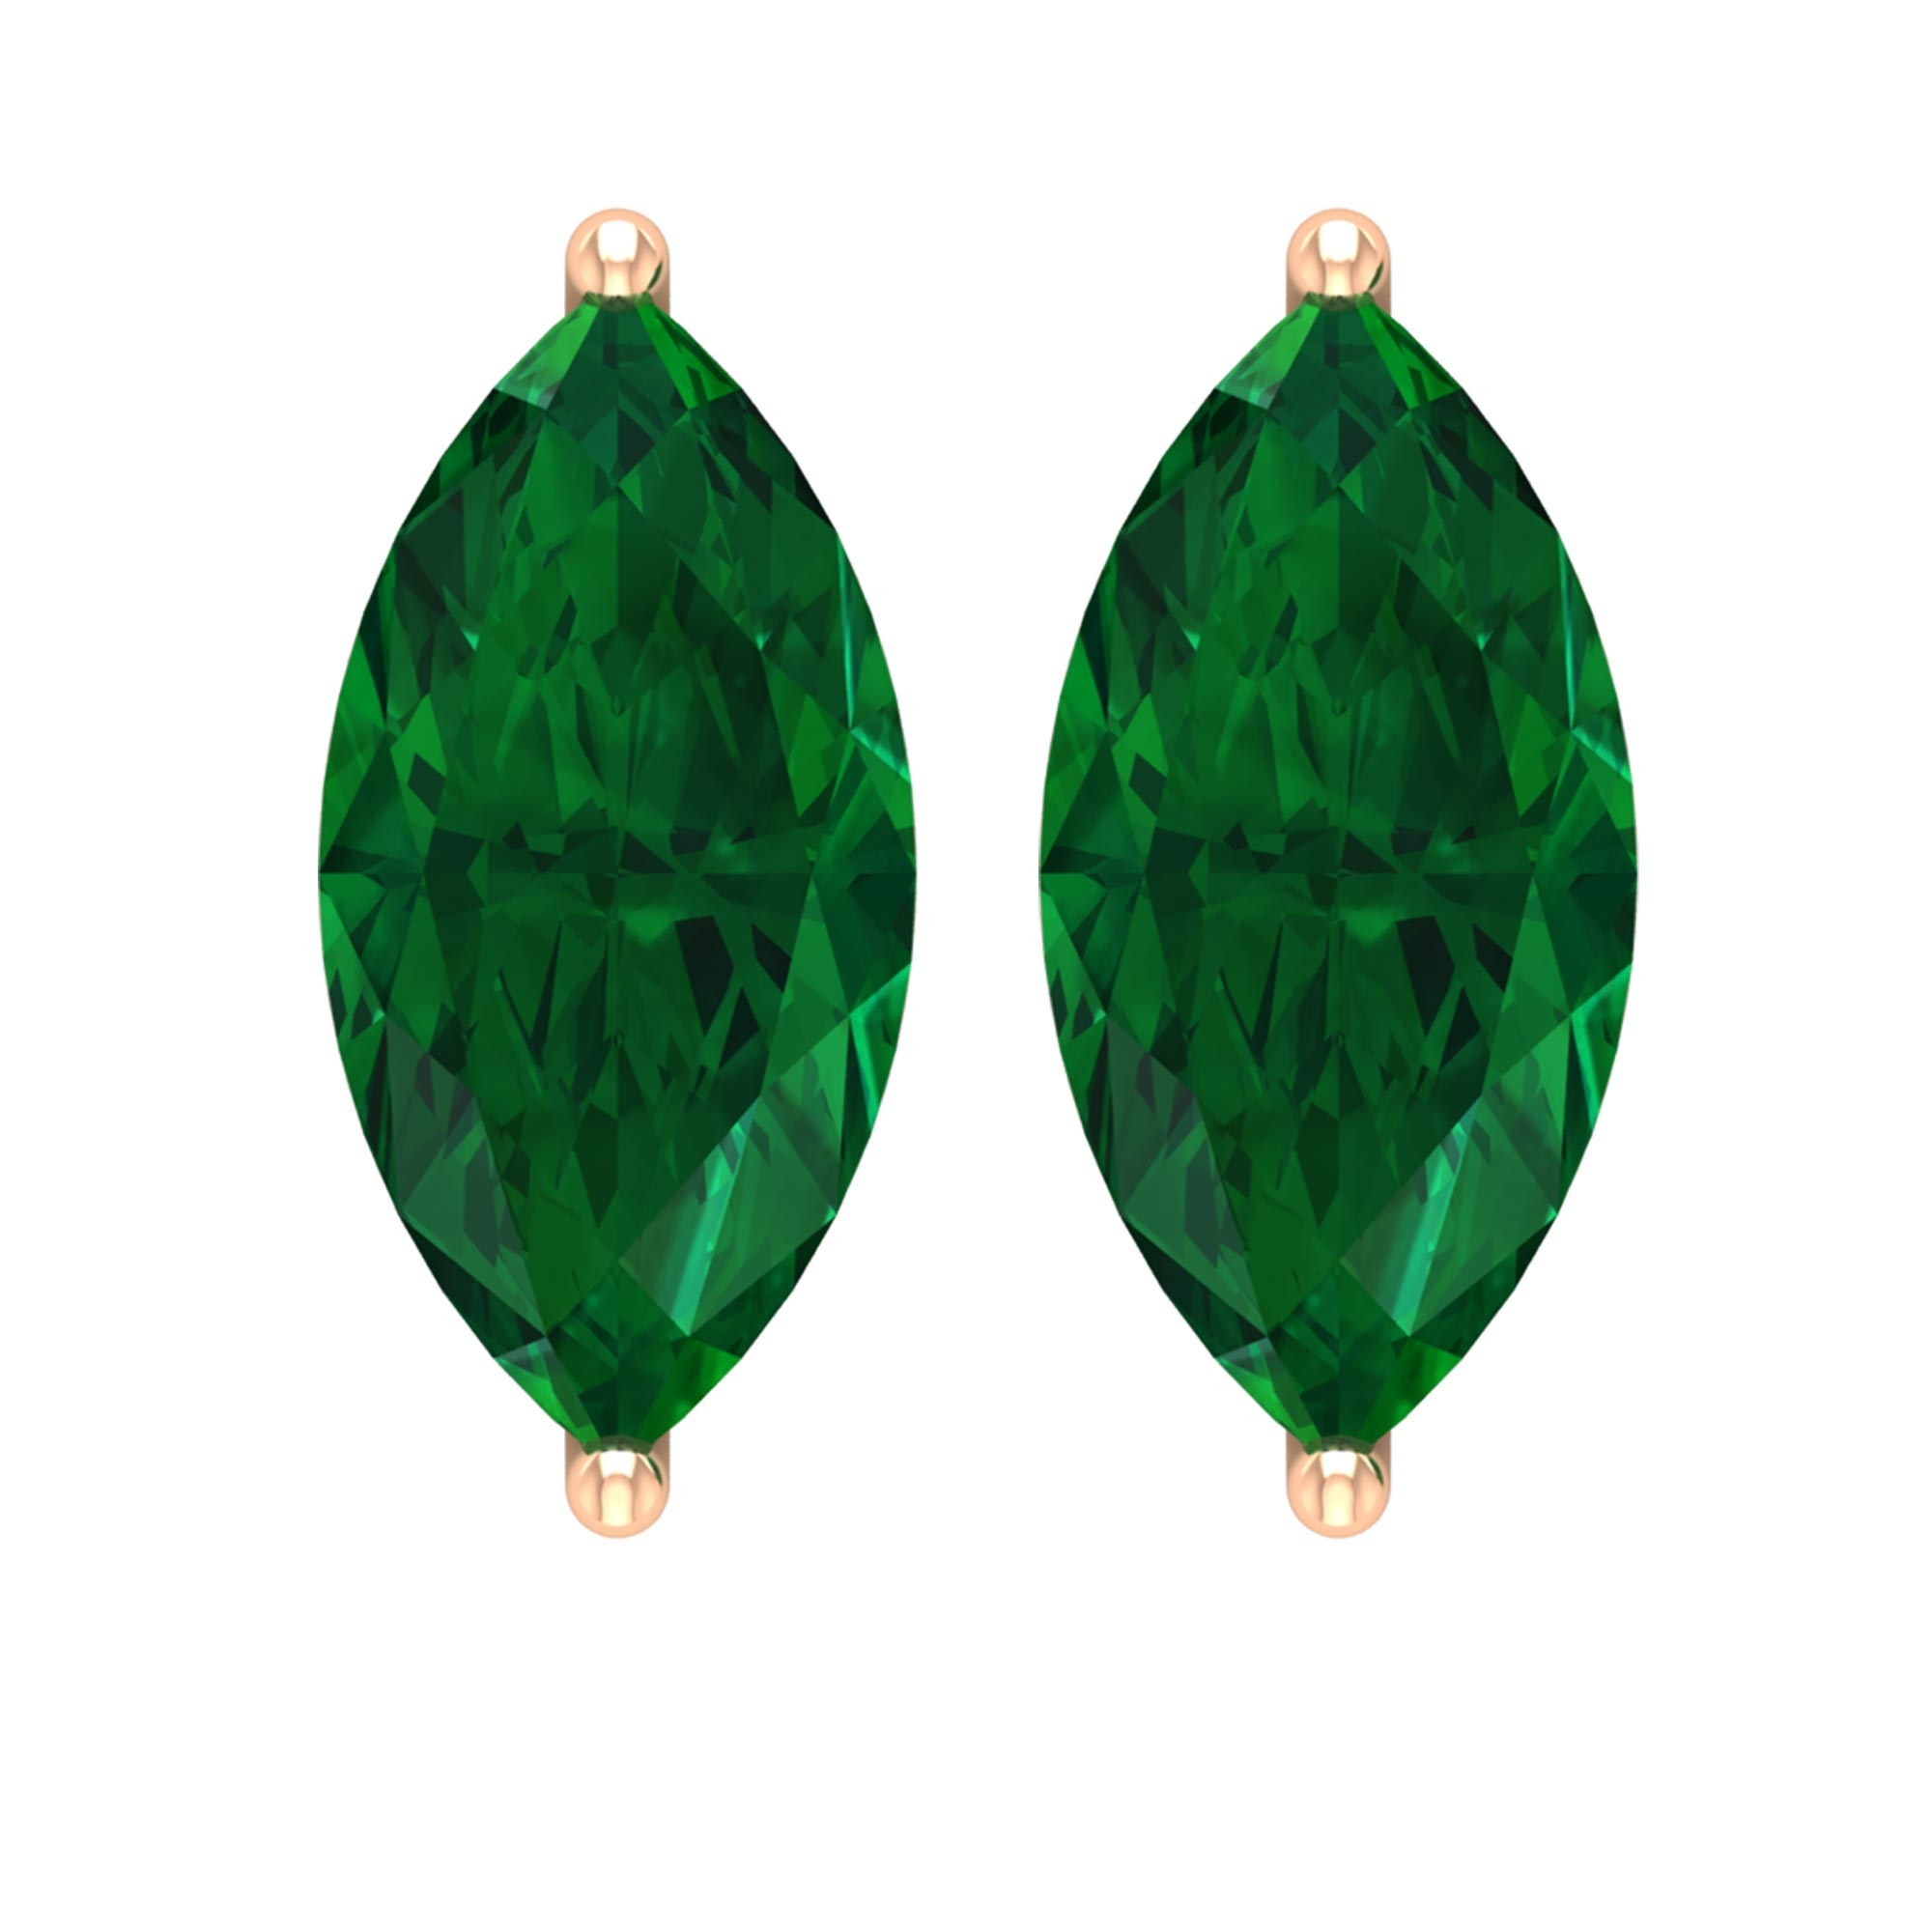 5X10 MM Marquise Cut Emerald Solitaire Stud Earrings in 2 Prong Setting